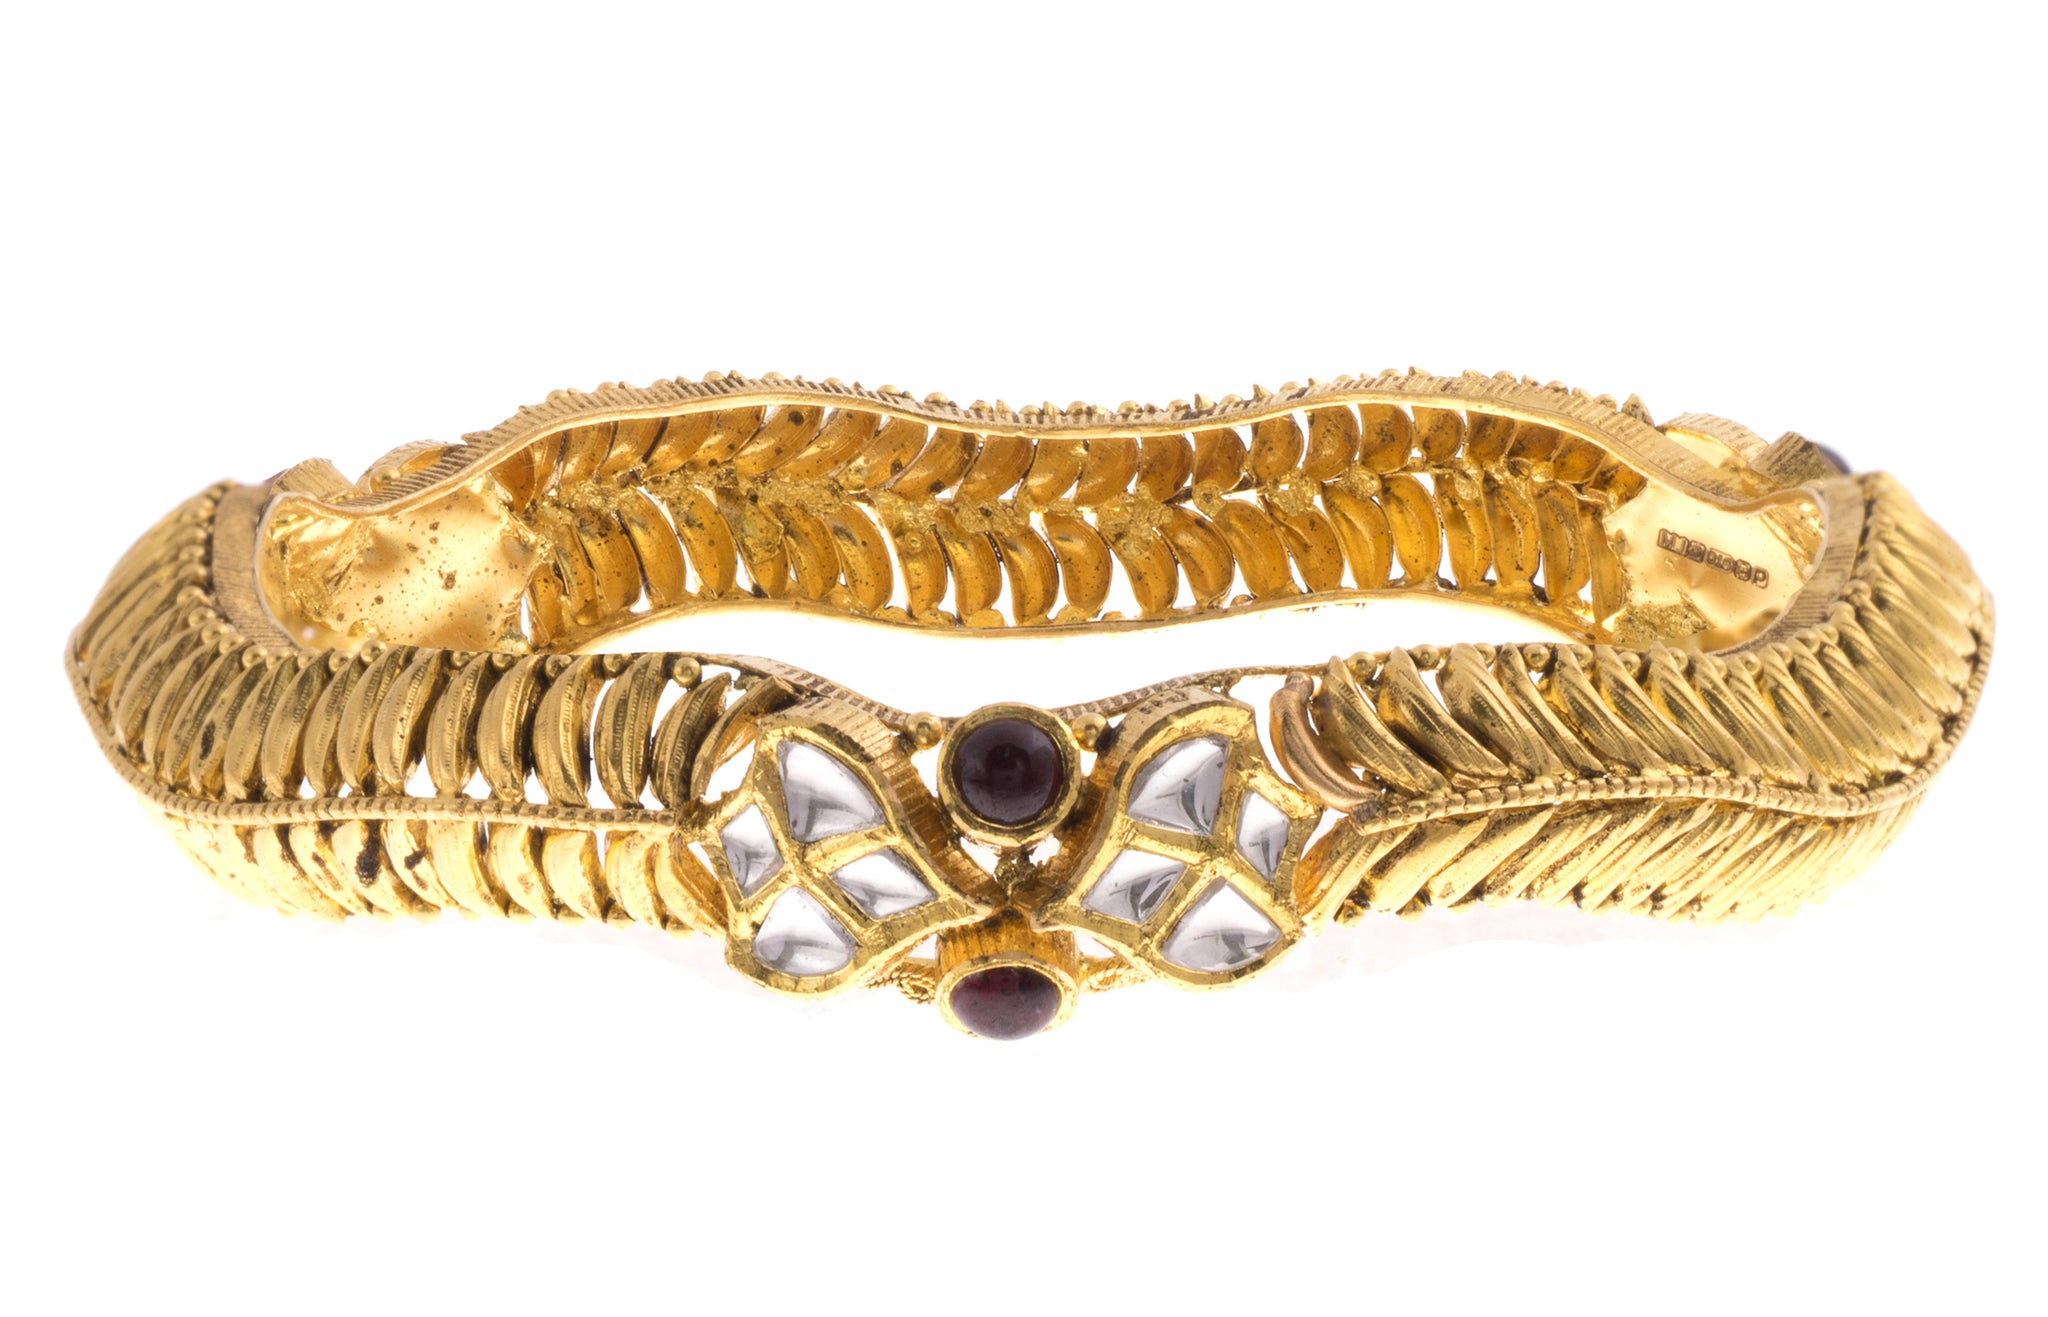 22ct Yellow Gold Antiquated Look Bangle with Synthetic Stones B-1582